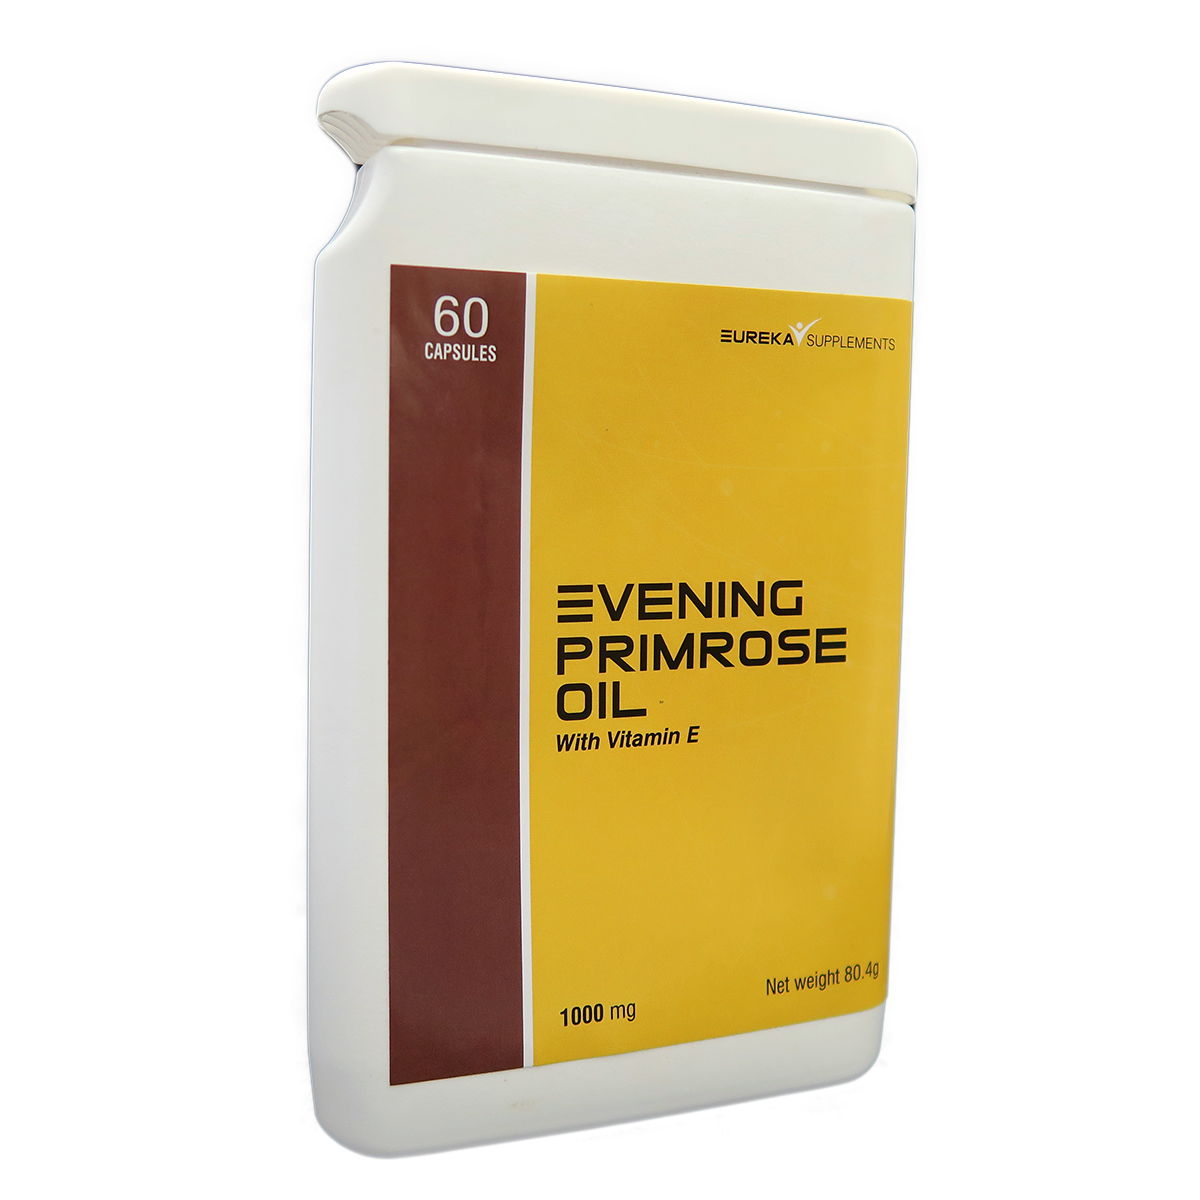 Evening Primrose Oil for PMS and menopause symptoms